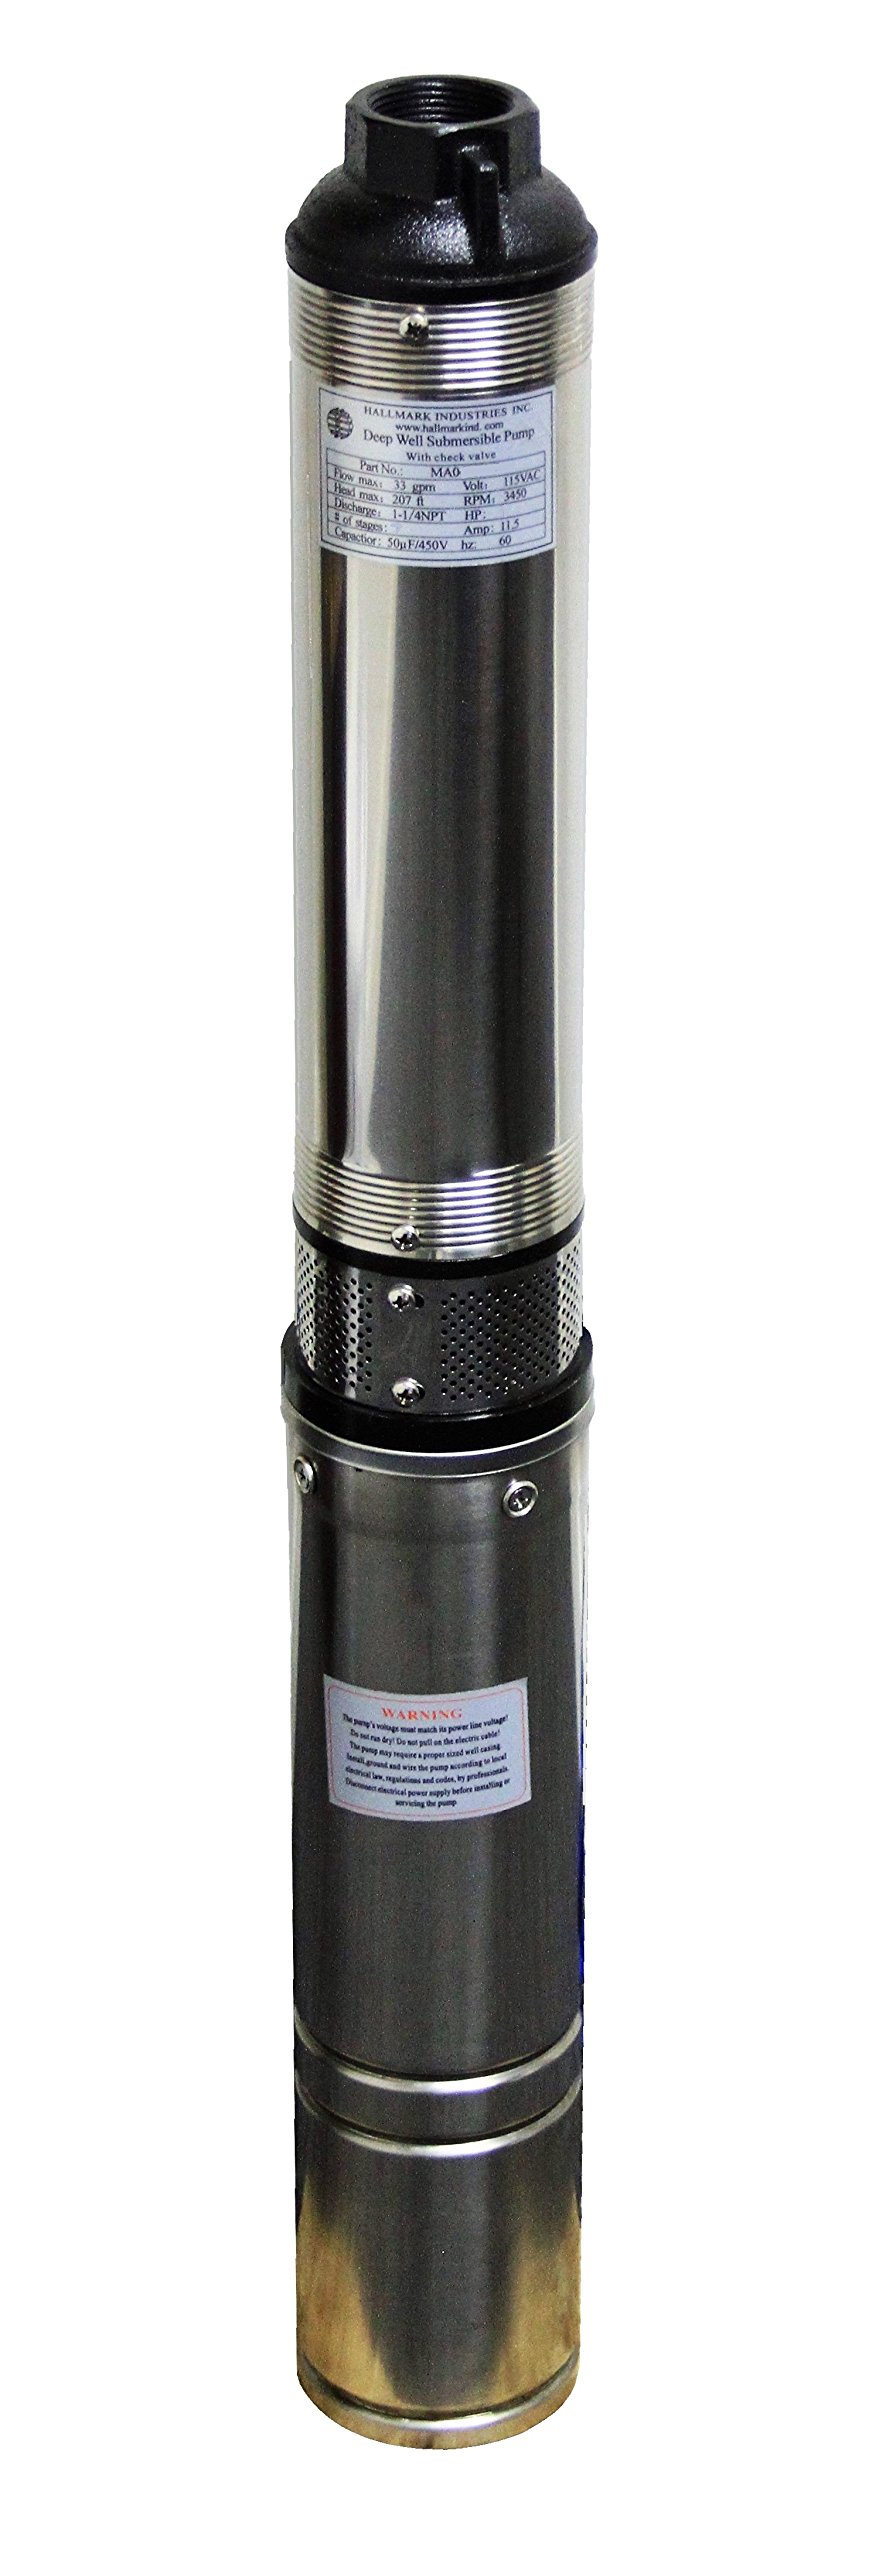 Hallmark Industries MA0414X-7A Deep Well Submersible Pump, 1 hp, 230V, 60 Hz, 33 GPM, 207' Head, Stainless Steel, 4'' by Hallmark Industries